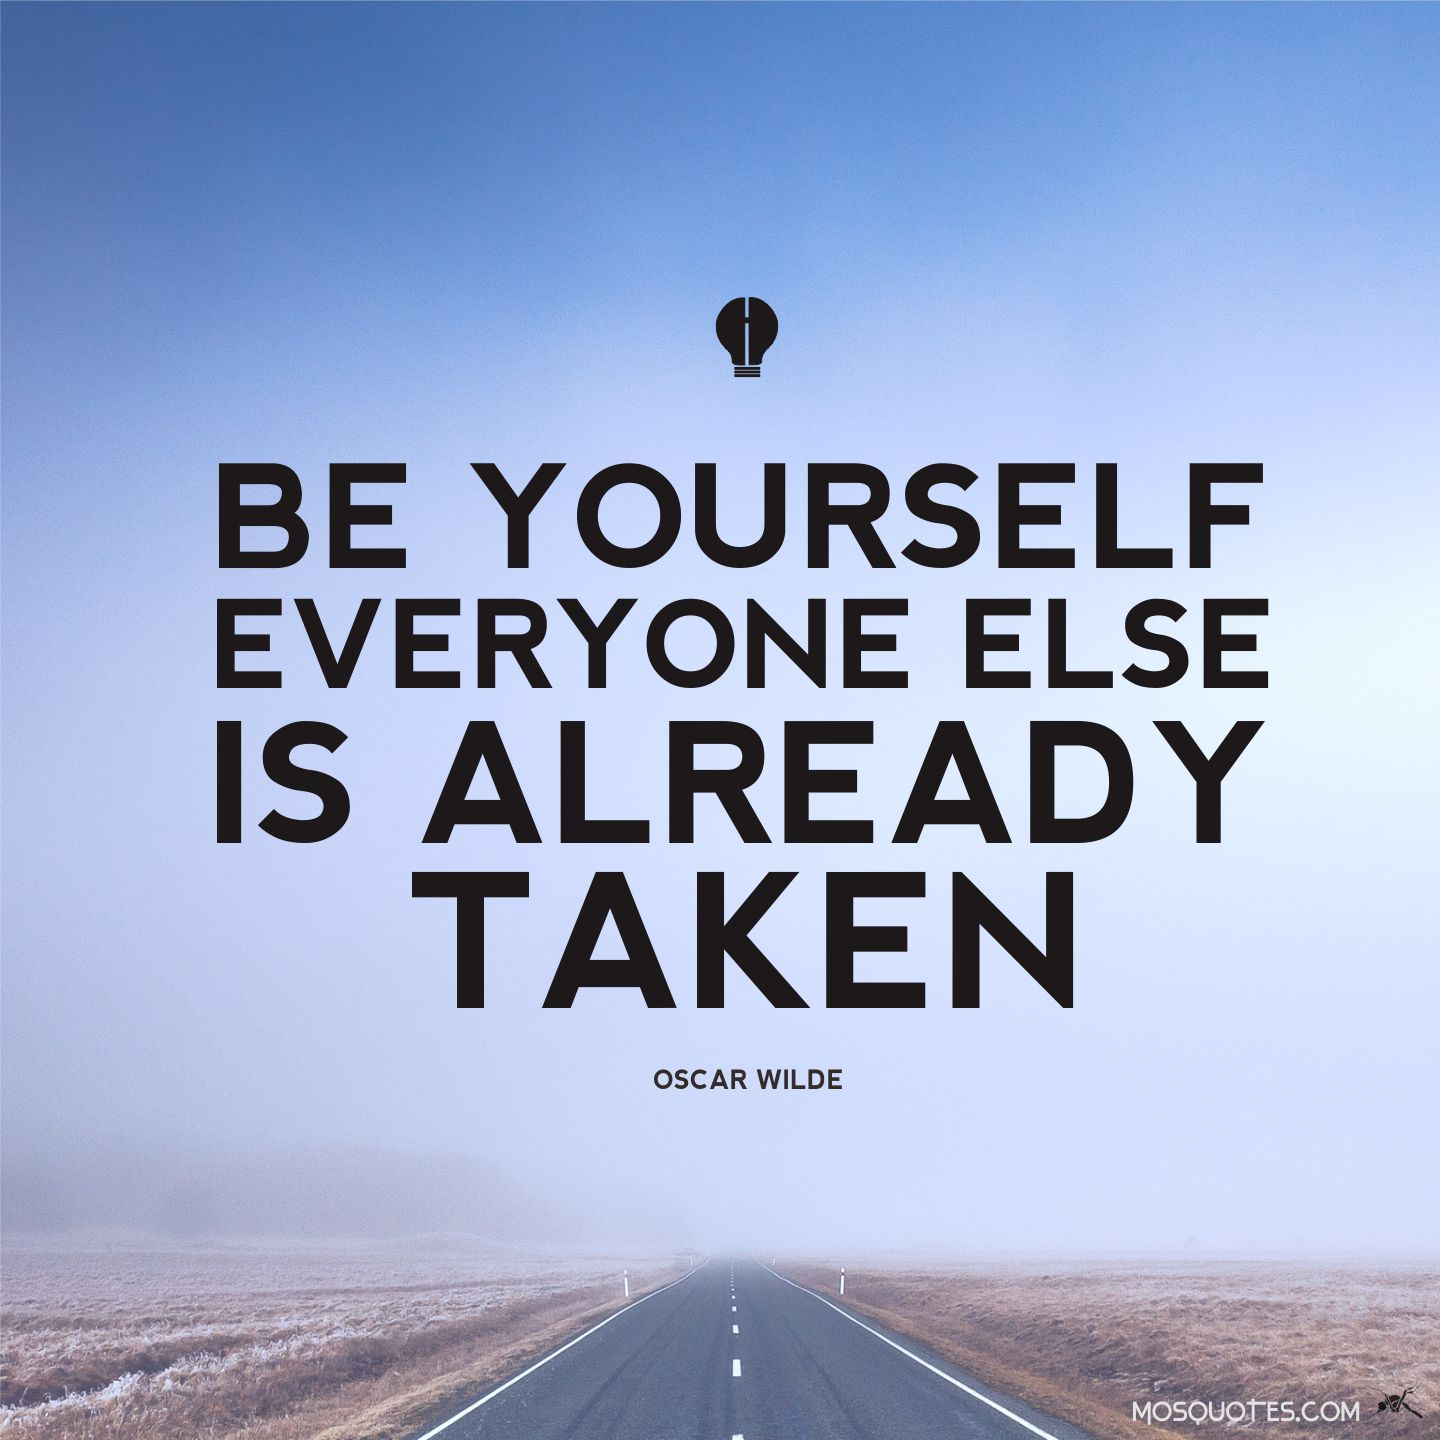 Good Quotes About Being Yourself: Be Yourself Inspirational Quotes. QuotesGram